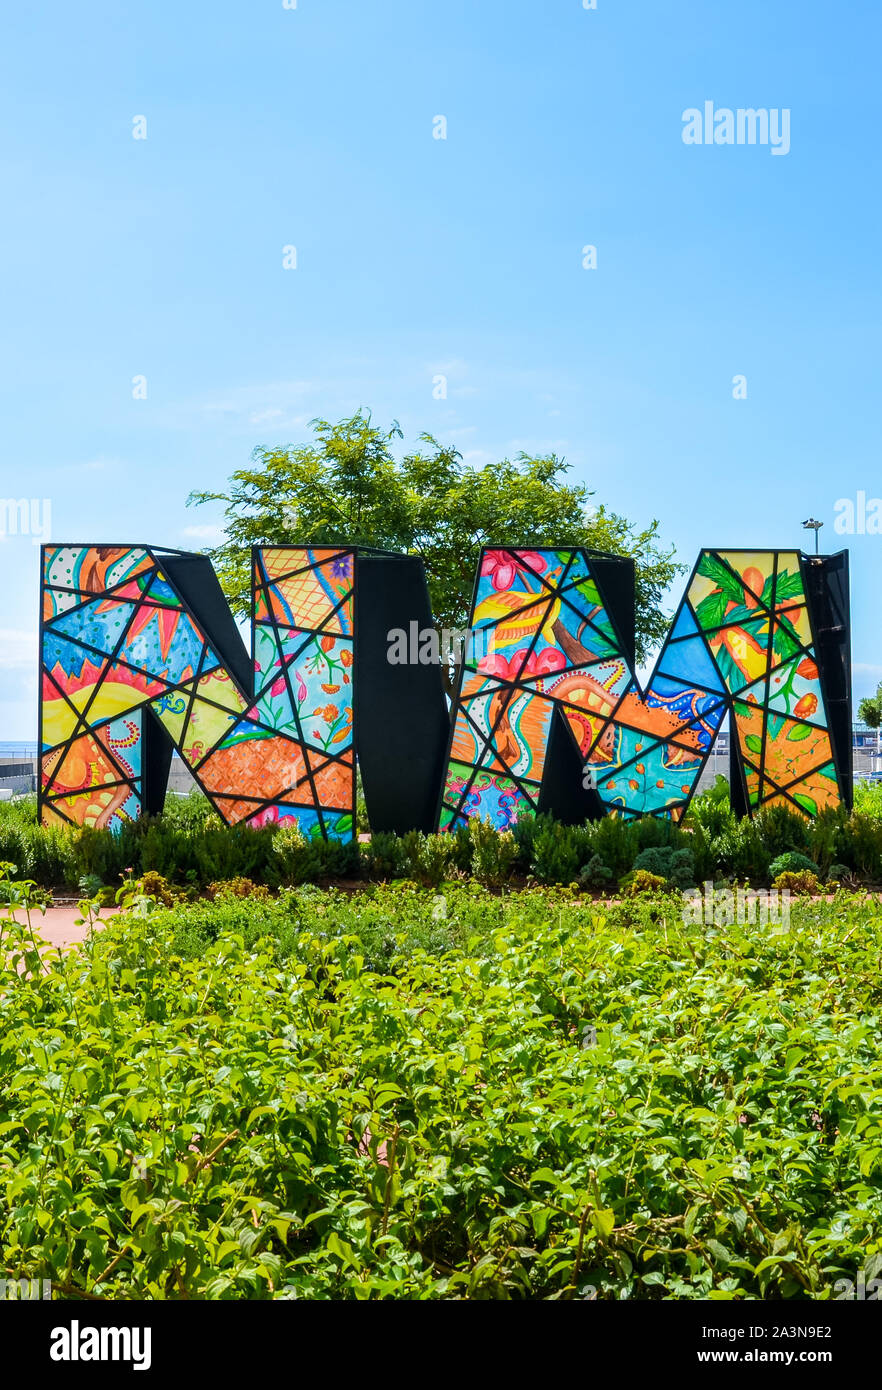 Funchal, Madeira, Portugal - Sep 10, 2019: Nelson Mandela Memorial in the Portuguese city, capital of Madeira. Colorful initials of the former South African leader. South Africa, president, politics. Stock Photo